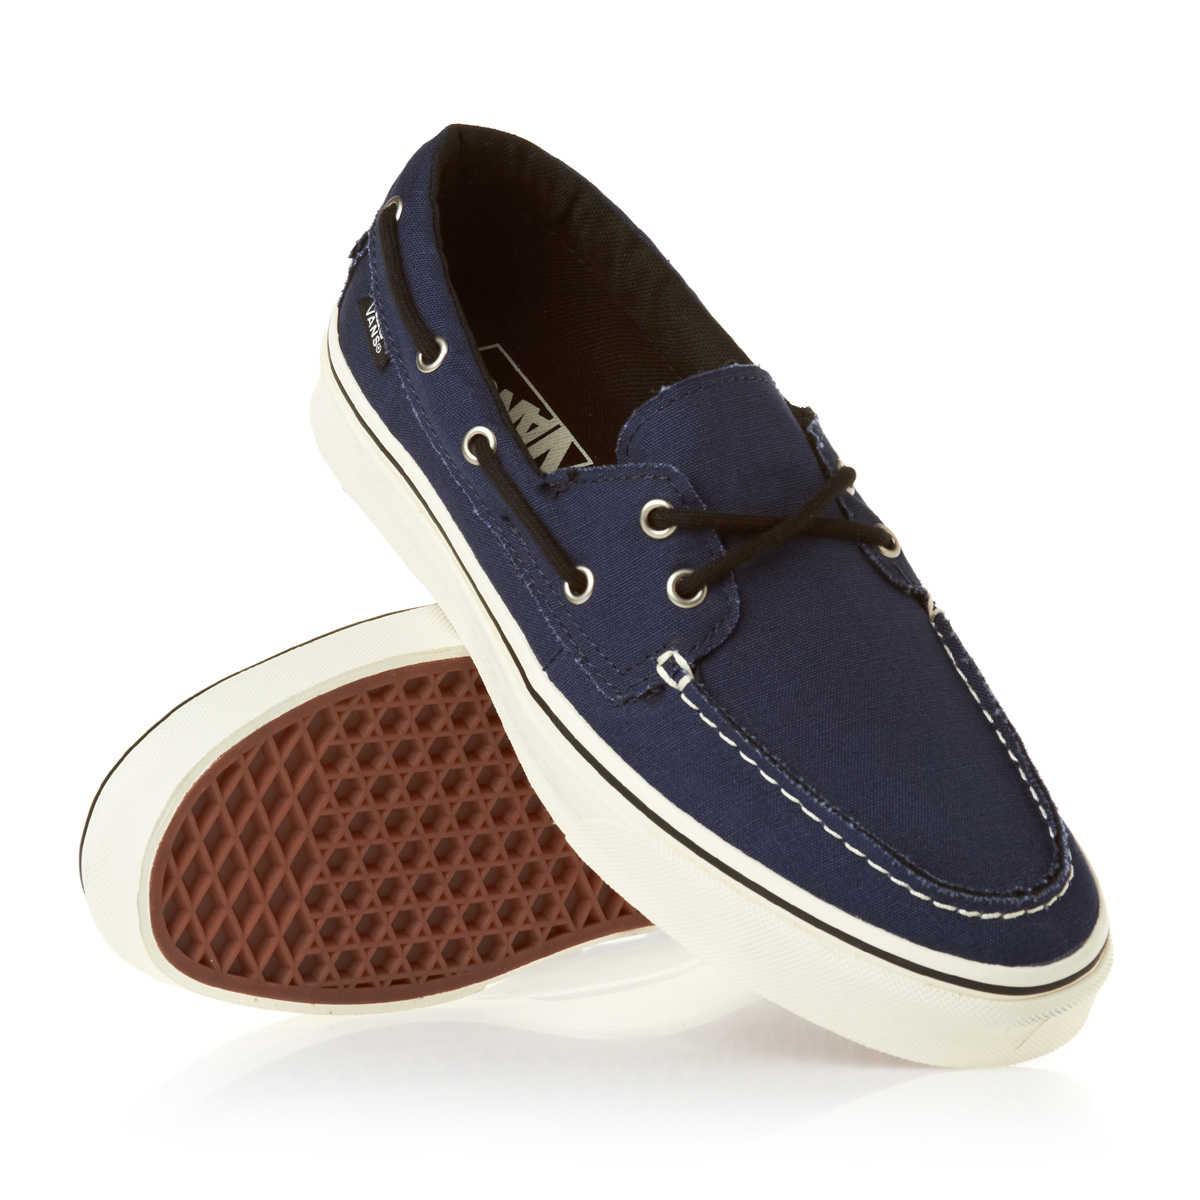 898ca105b70 ... these shoes take everything that is iconic about the classic Vans  authentic and reinvented it in a new fresh way. Perfectly skate-able  they re ...